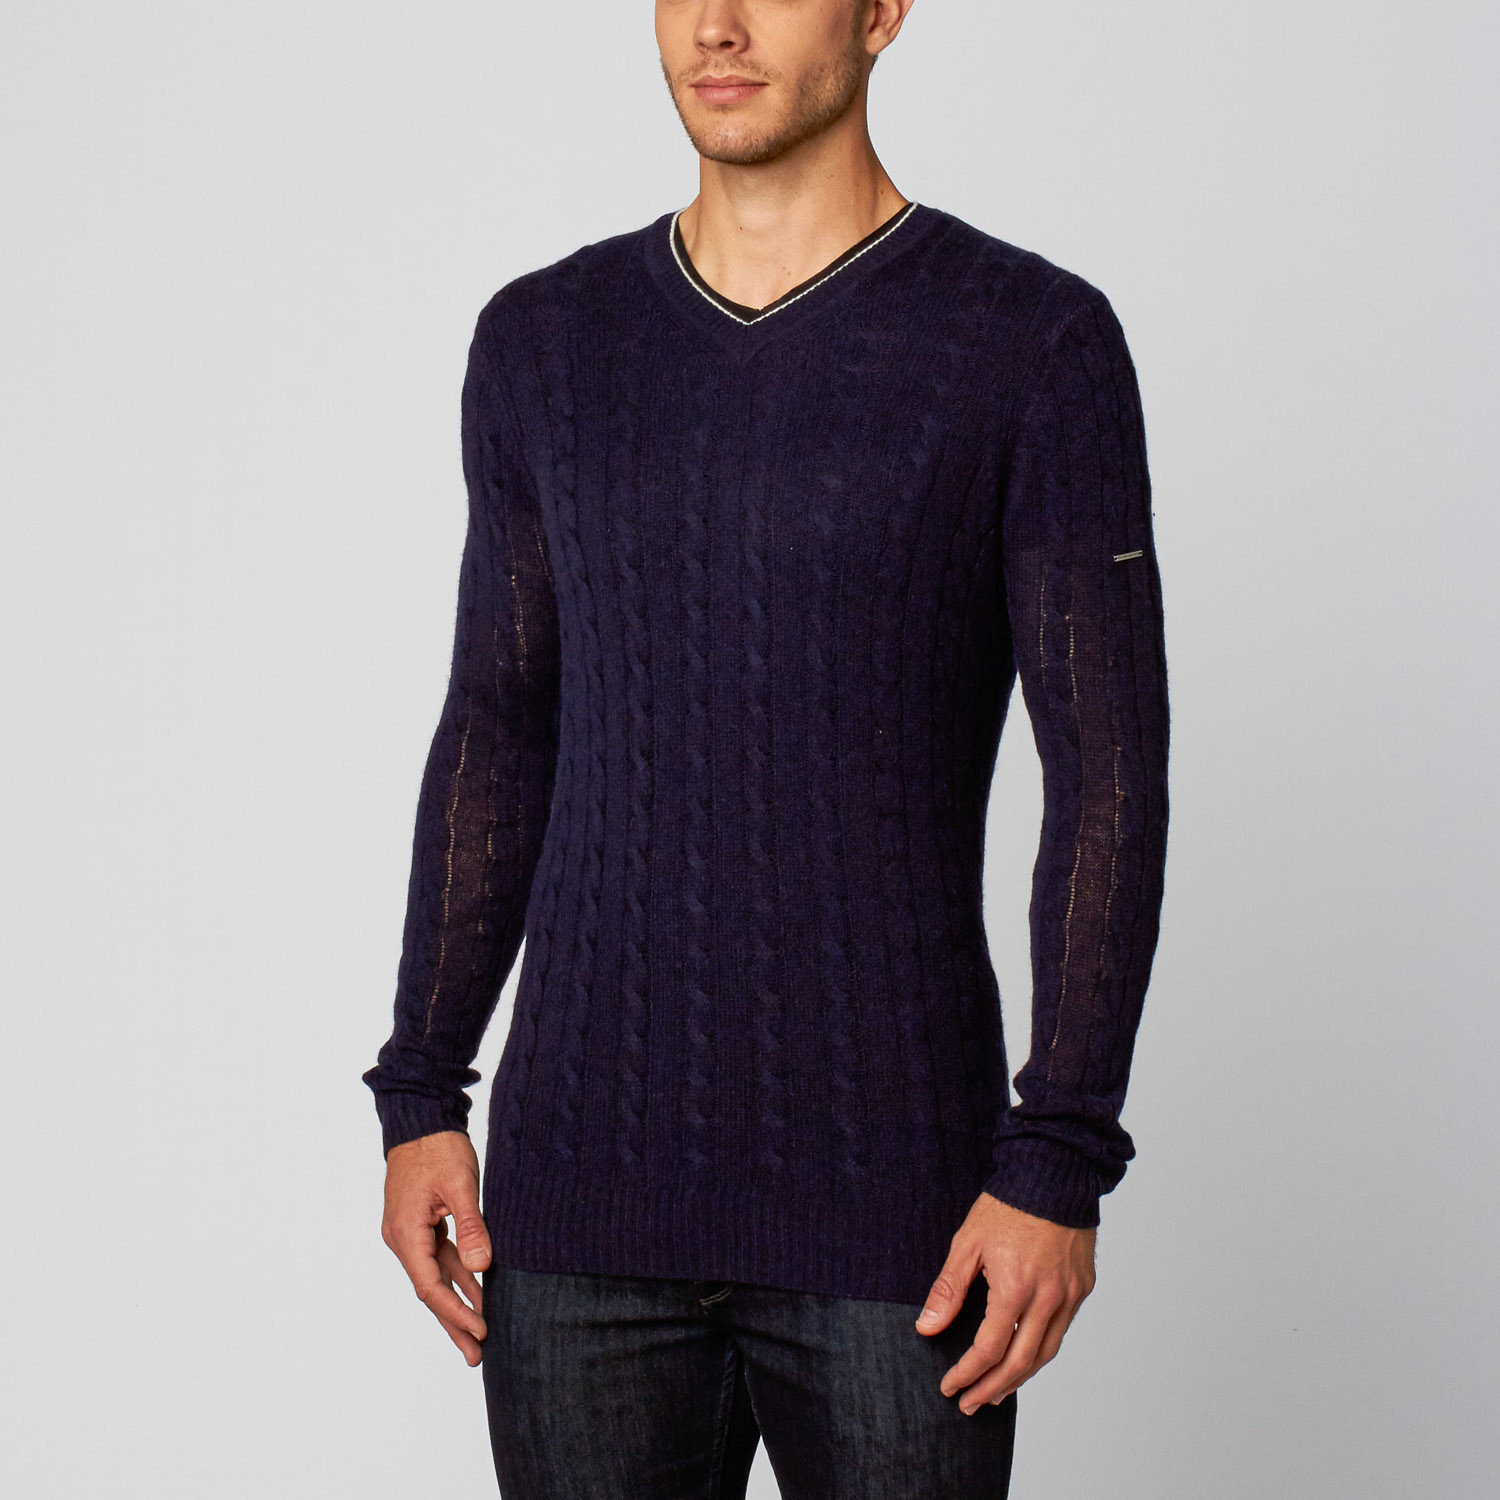 8d7b06d03a036 Angelo Cable V-Neck    Navy (XL) - Silk and Cashmere - Touch of Modern